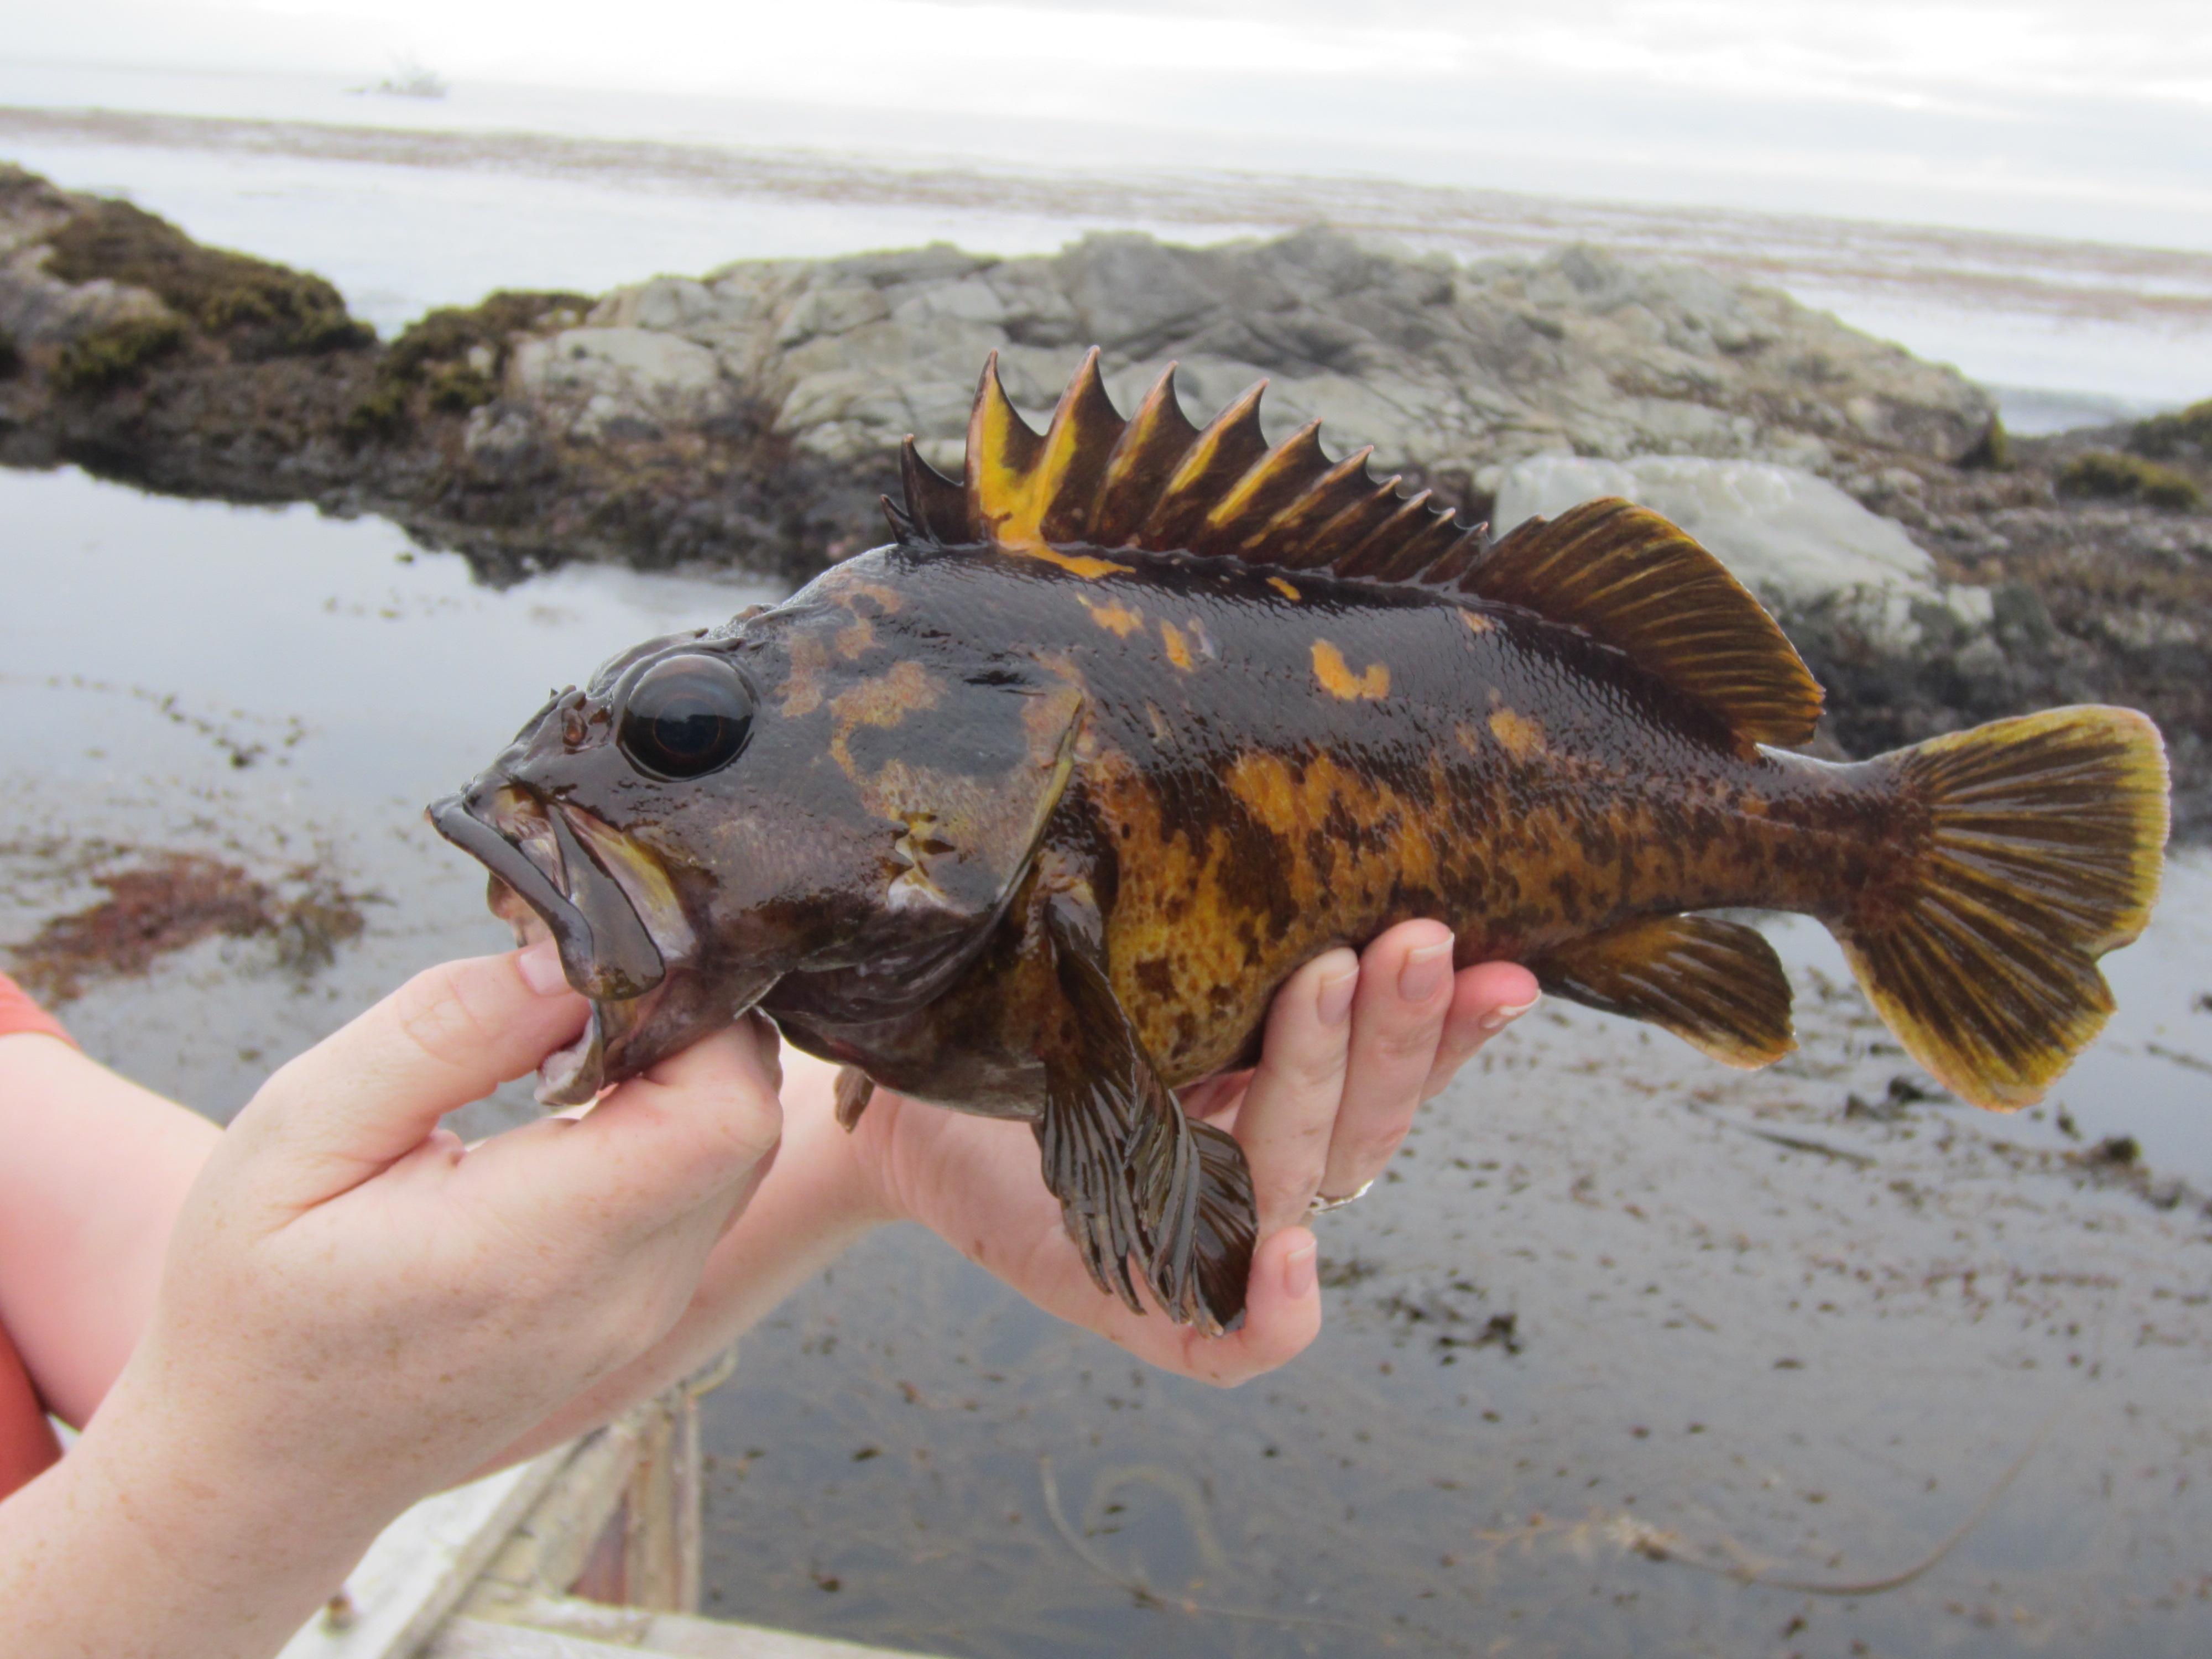 New recreational groundfish regulations now in effect for California fishing regulations